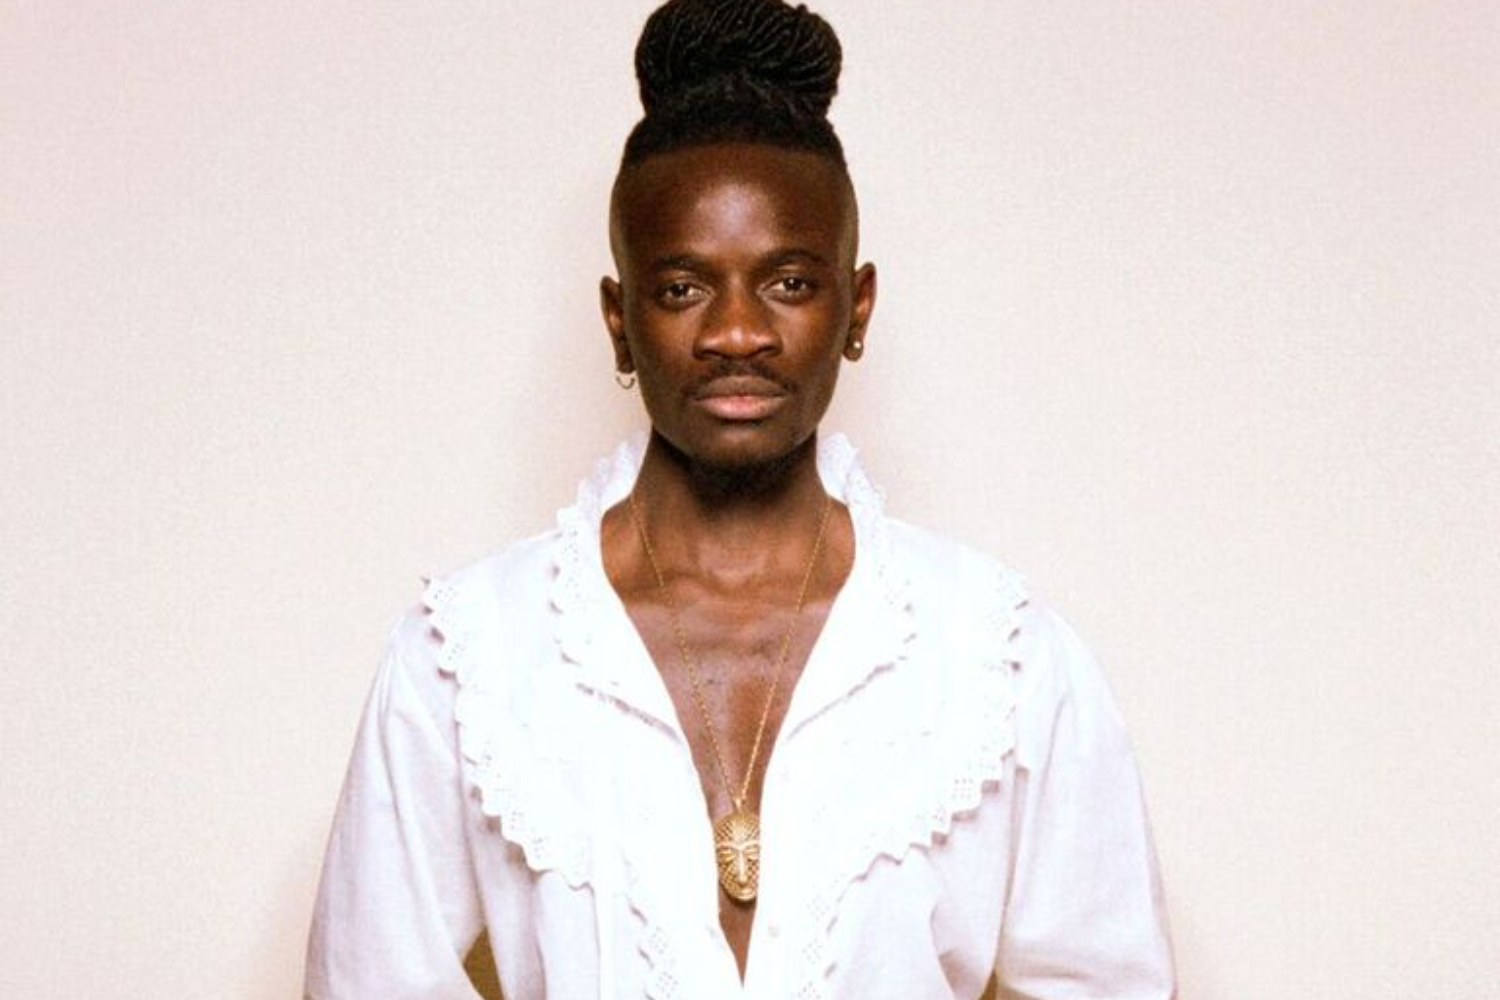 KWAYE shares new track 'Lost In My Boots'